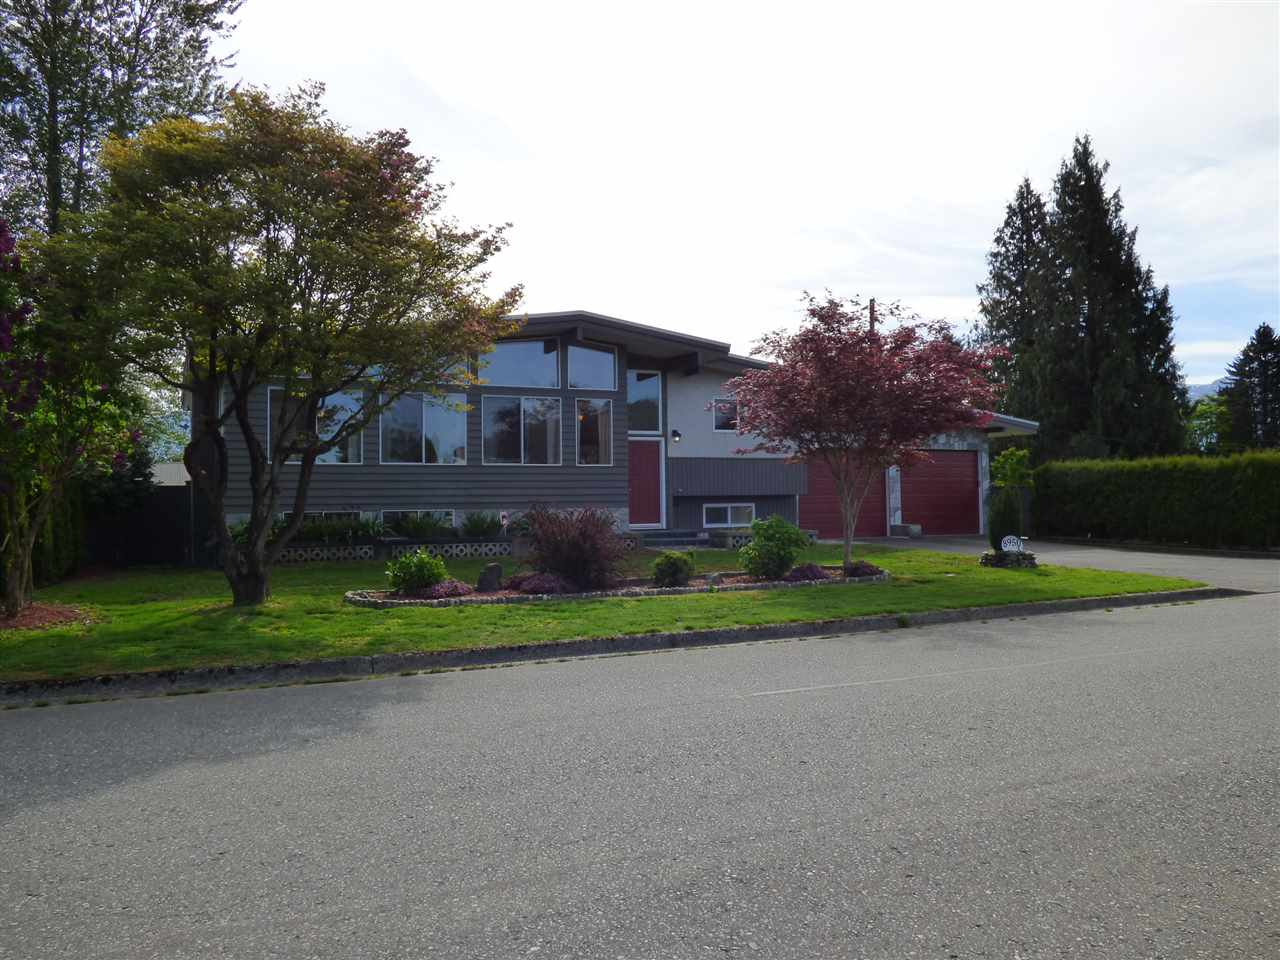 Main Photo: 8950 VINES Street in Chilliwack: Chilliwack W Young-Well House for sale : MLS® # R2060547